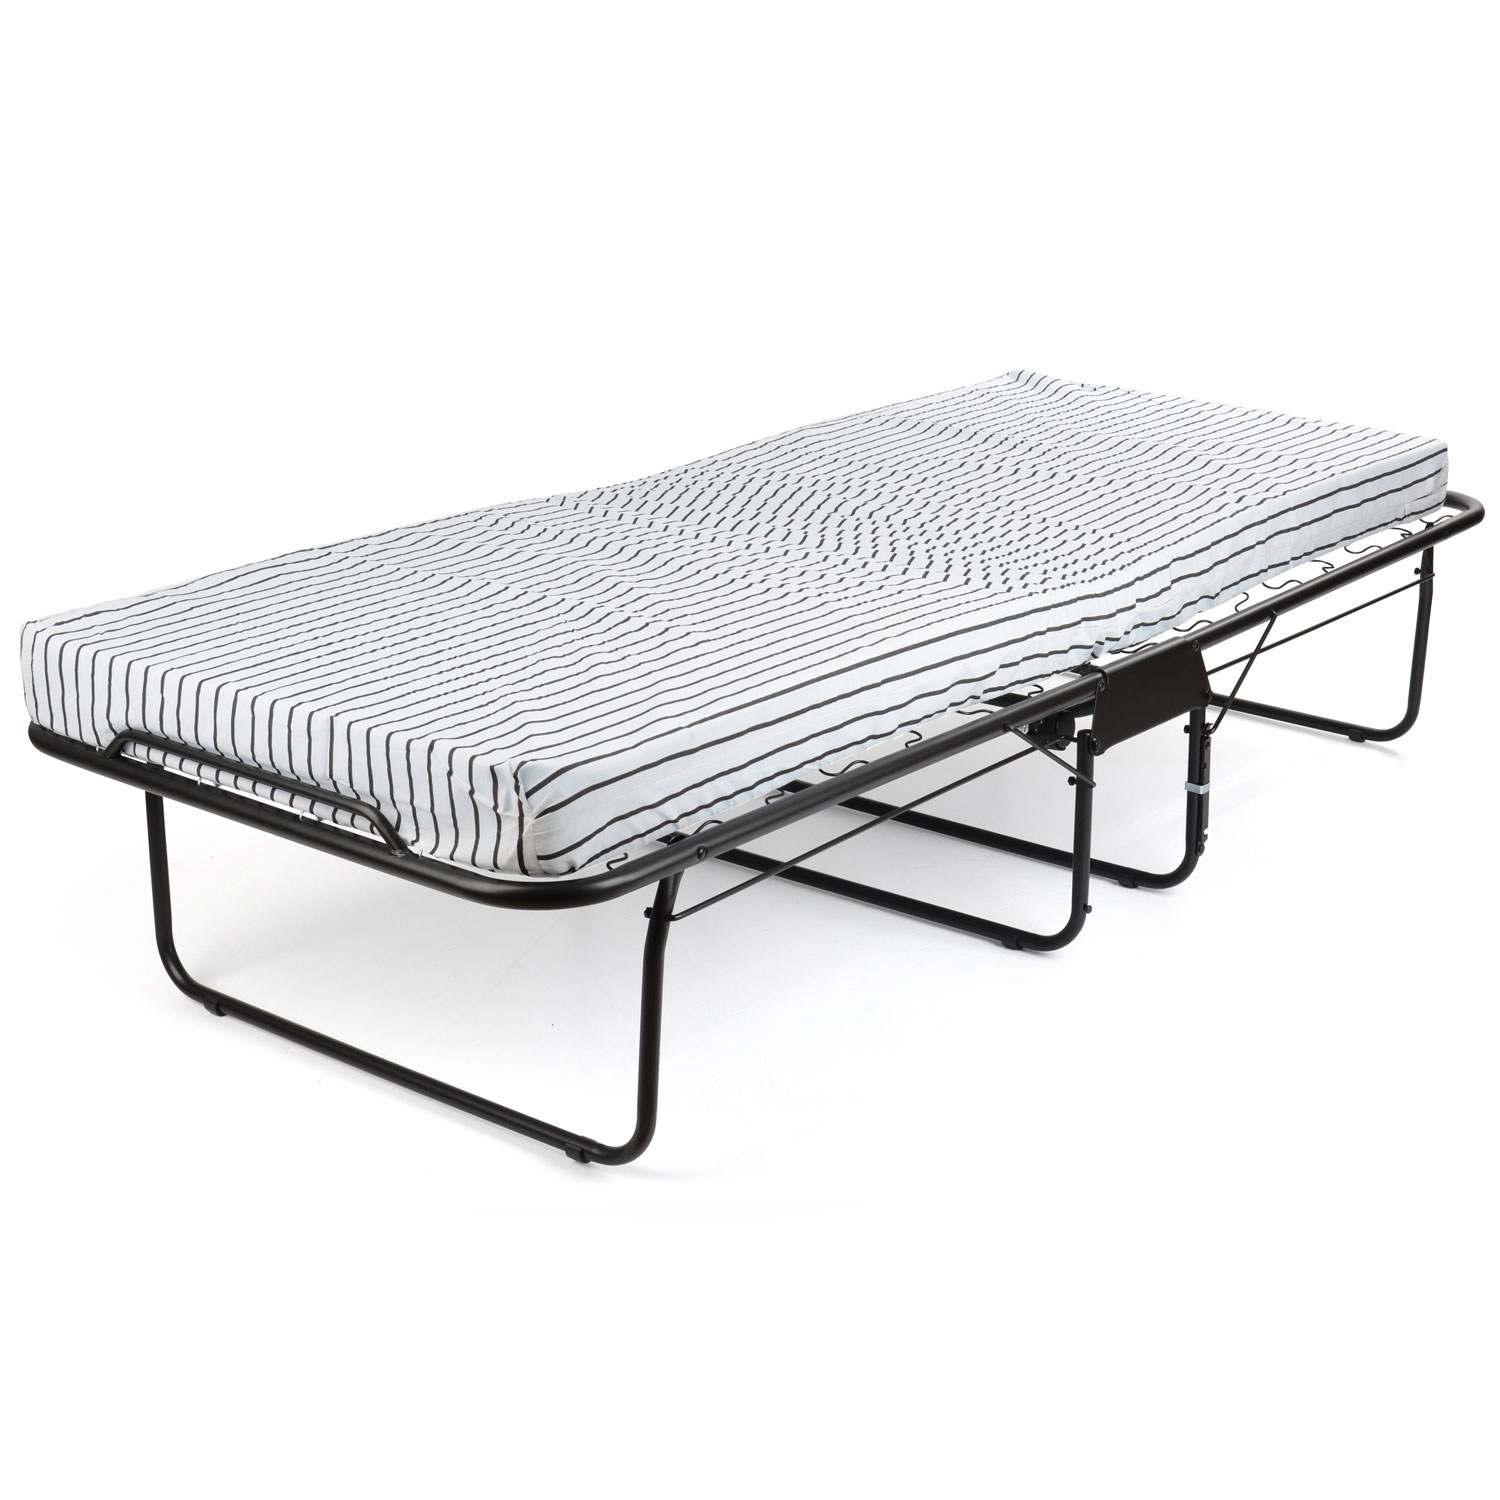 Image of Deluxe Single Folding Guest Bed Mattress